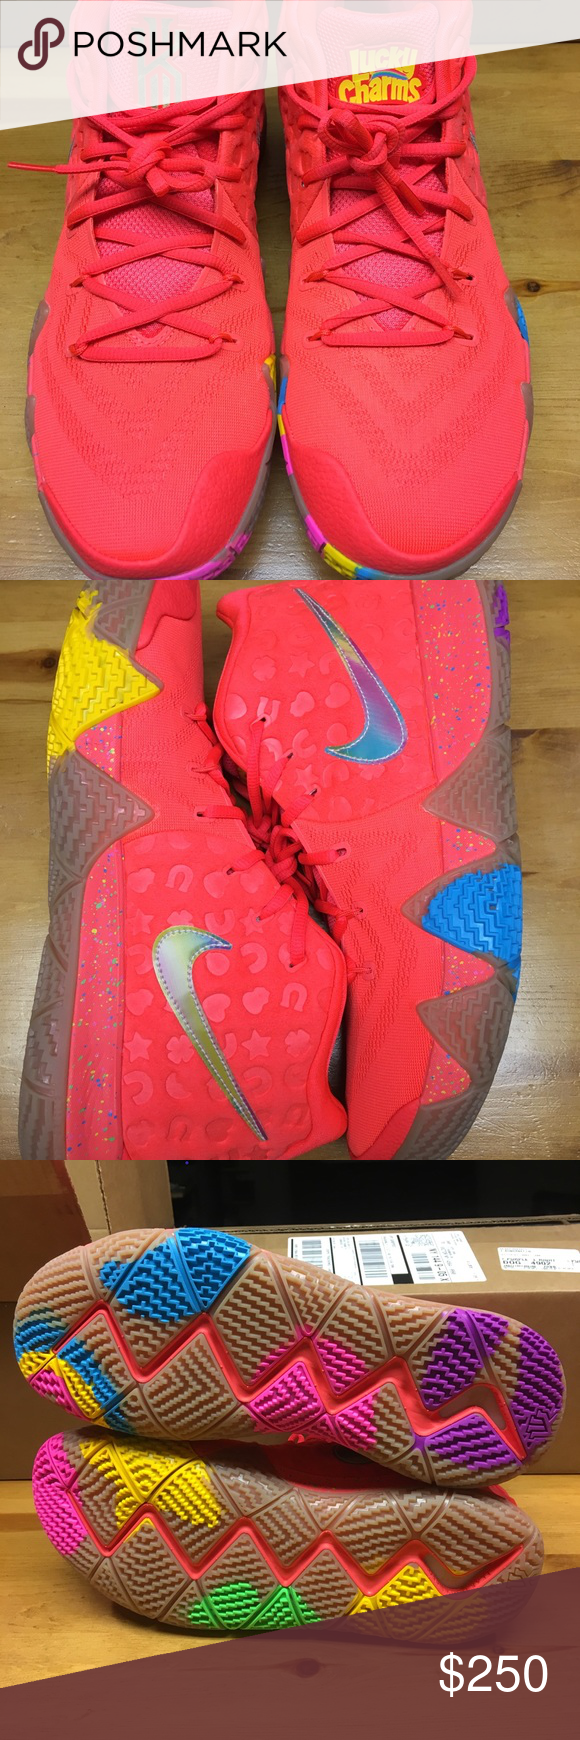 finest selection 480e2 d6dec Nike Kyrie Irving 4 lucky charms men's 12.5 new I am selling ...